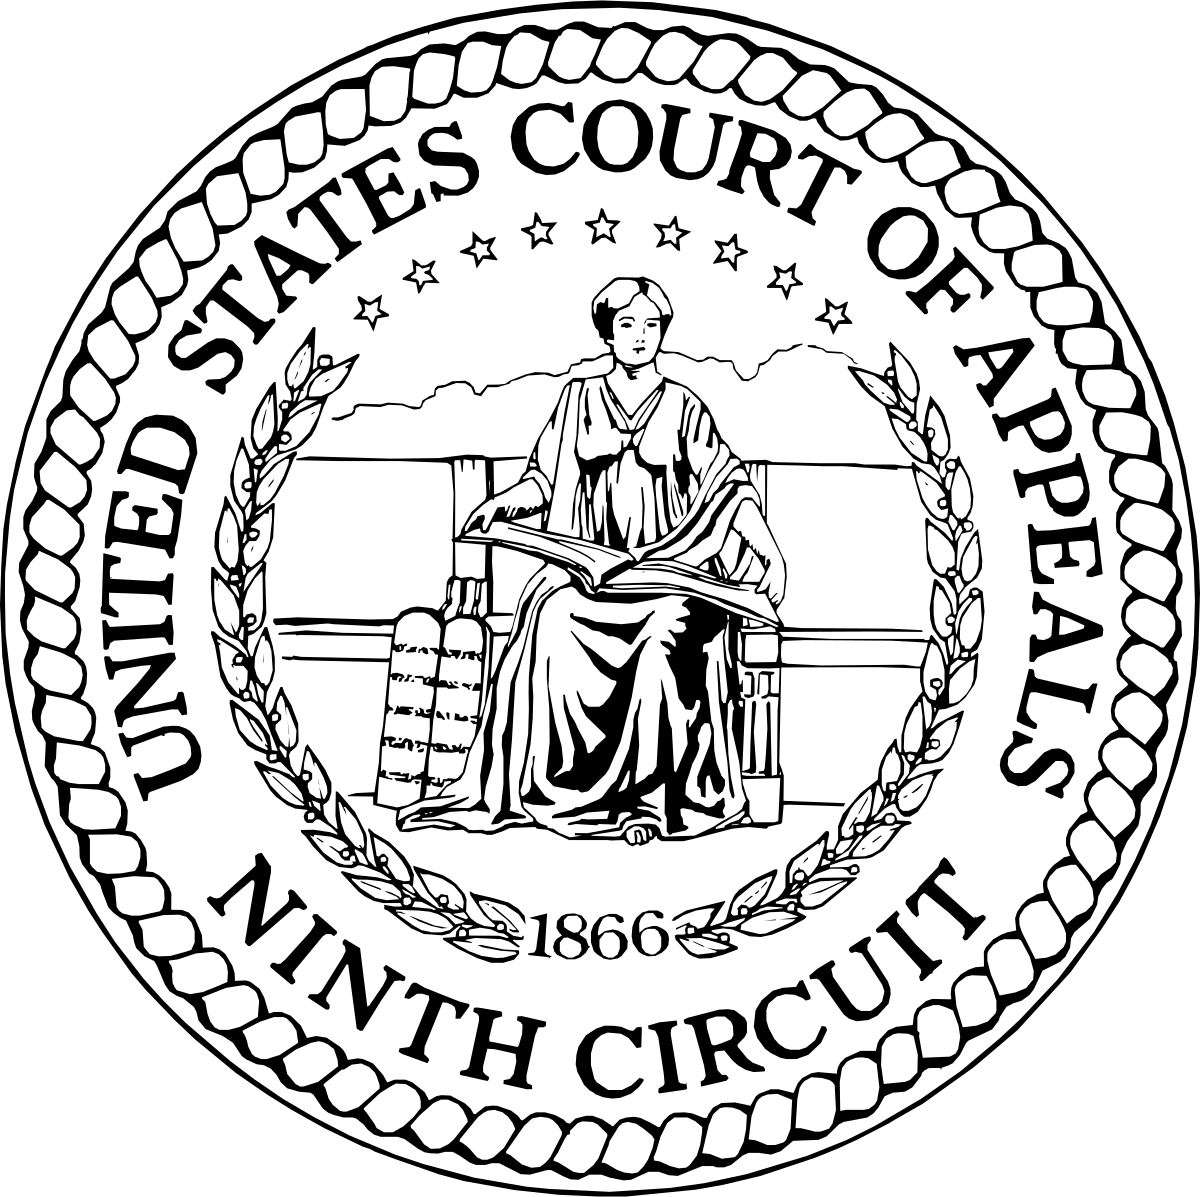 Boschetto v hansing wikipedia. Government clipart building supreme court